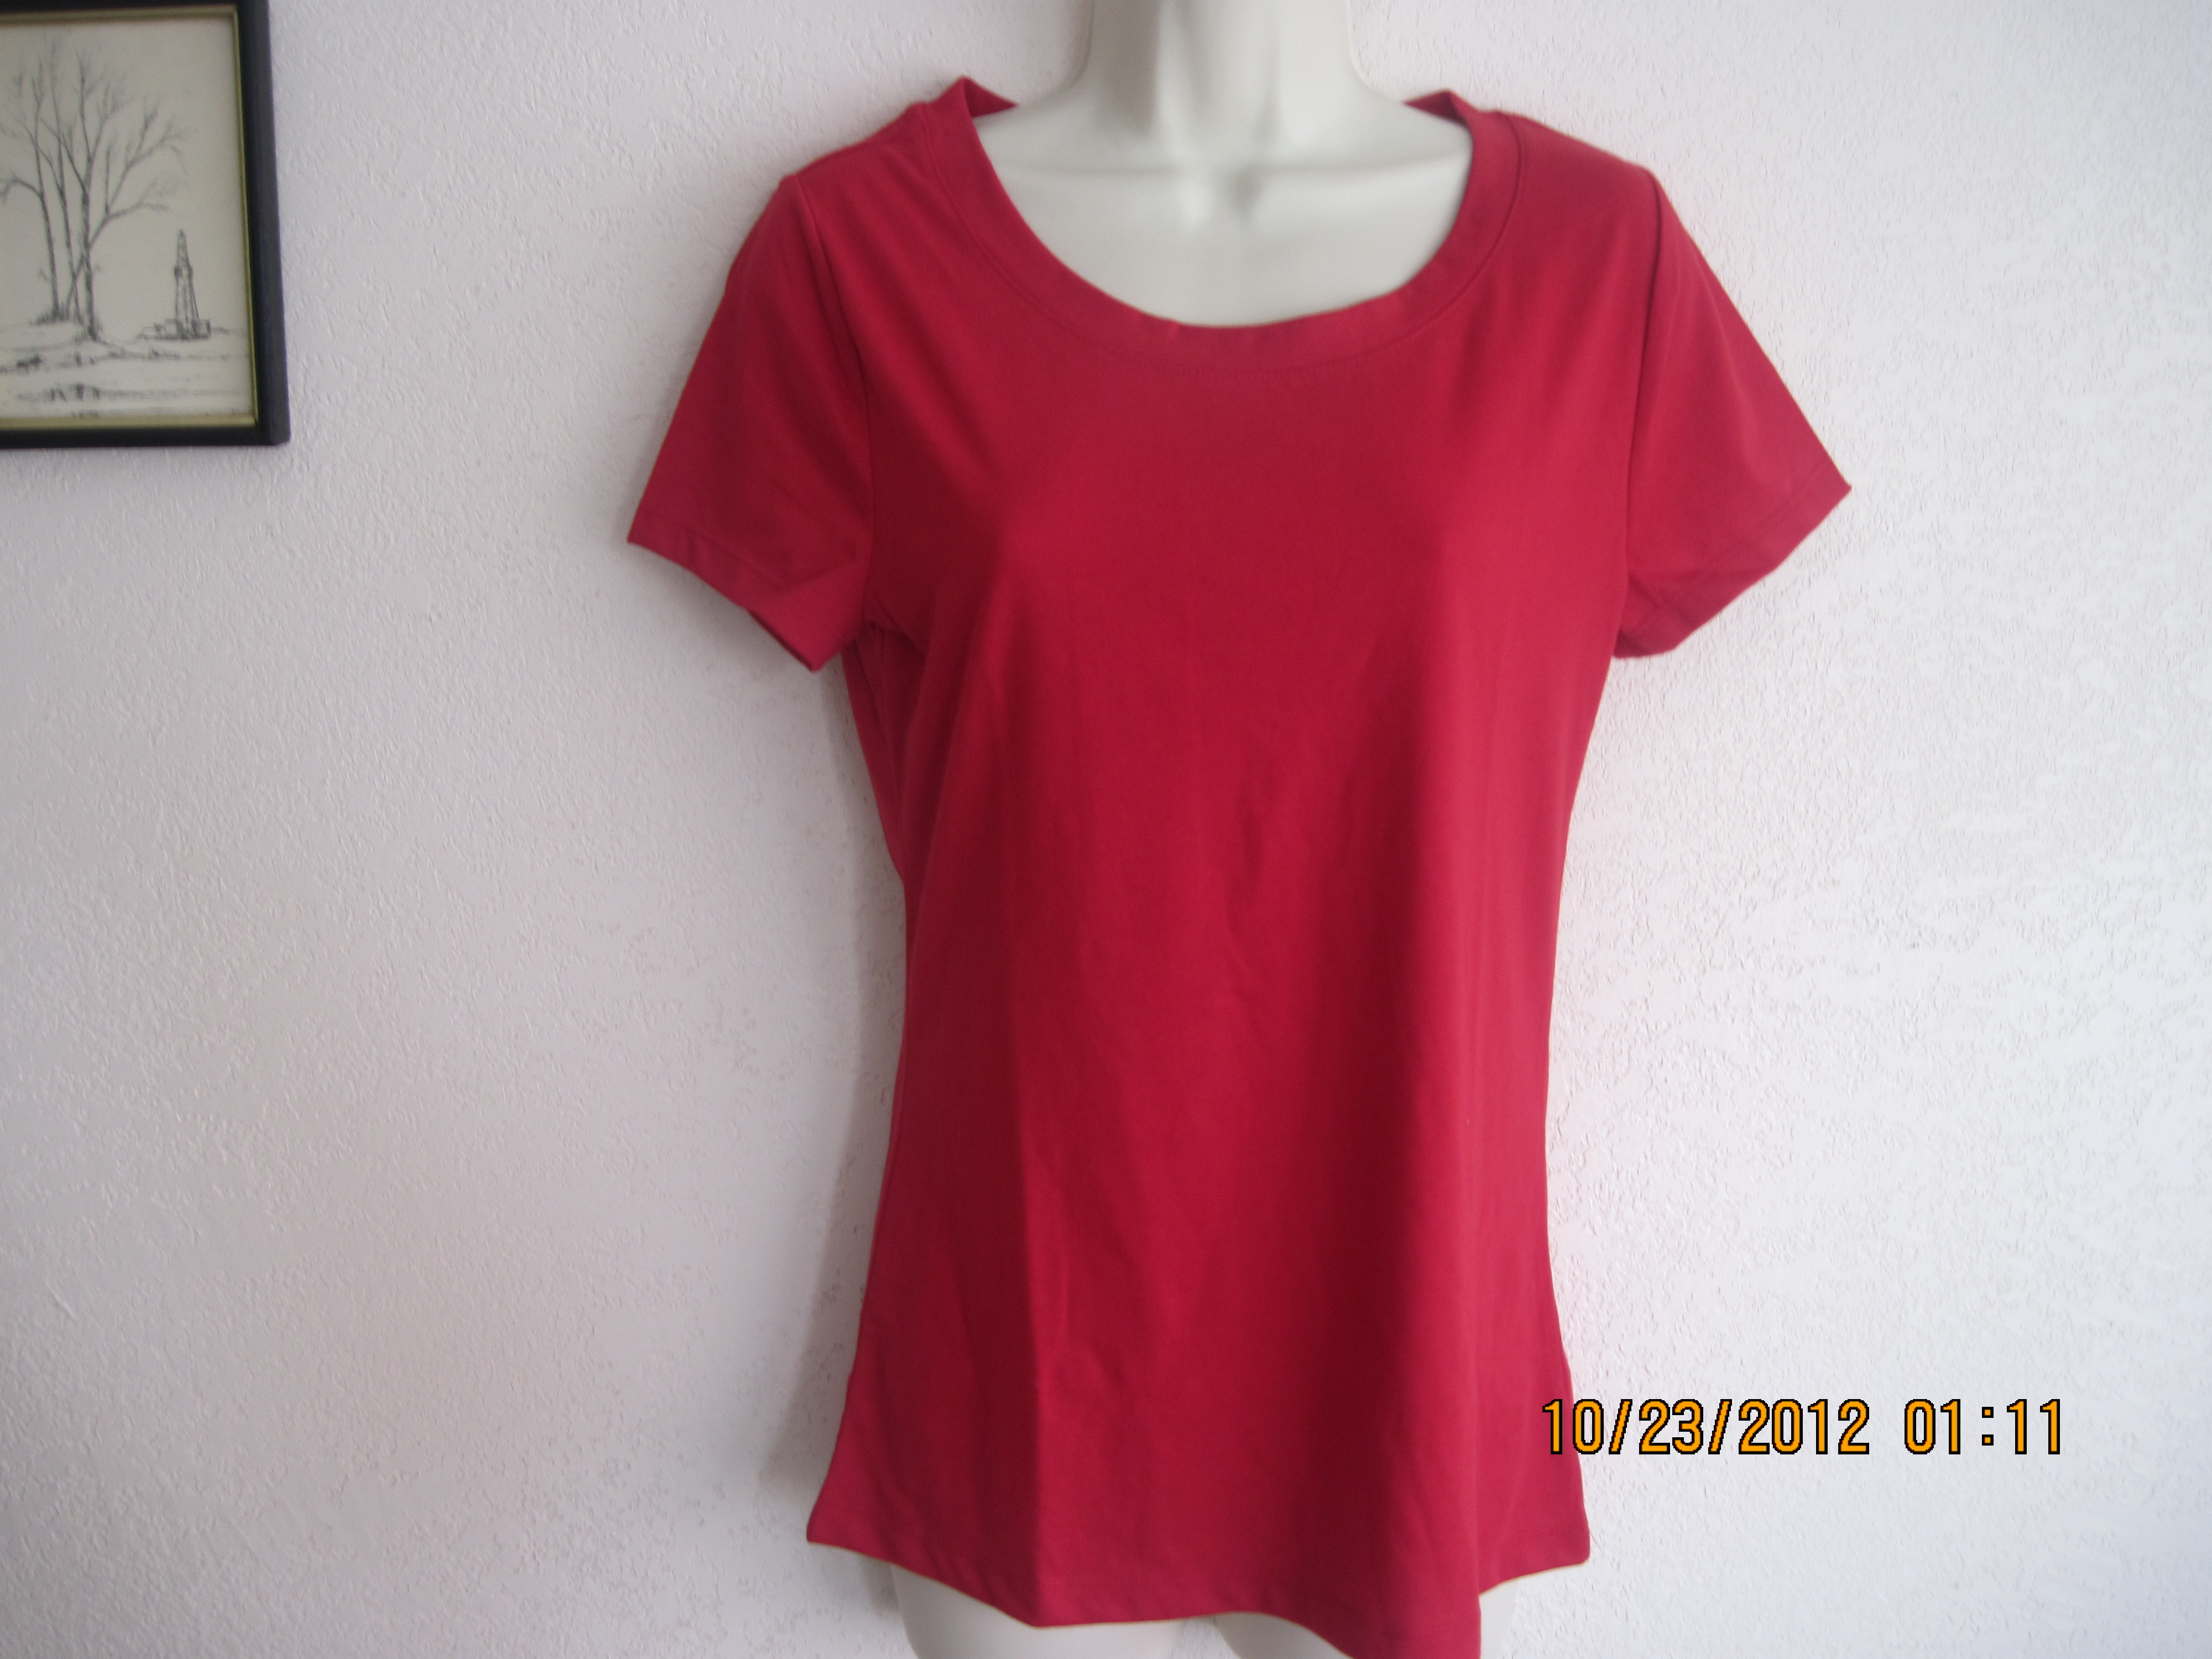 Bobbie Brooks Sz M 8-10 T-Shirt (Red)